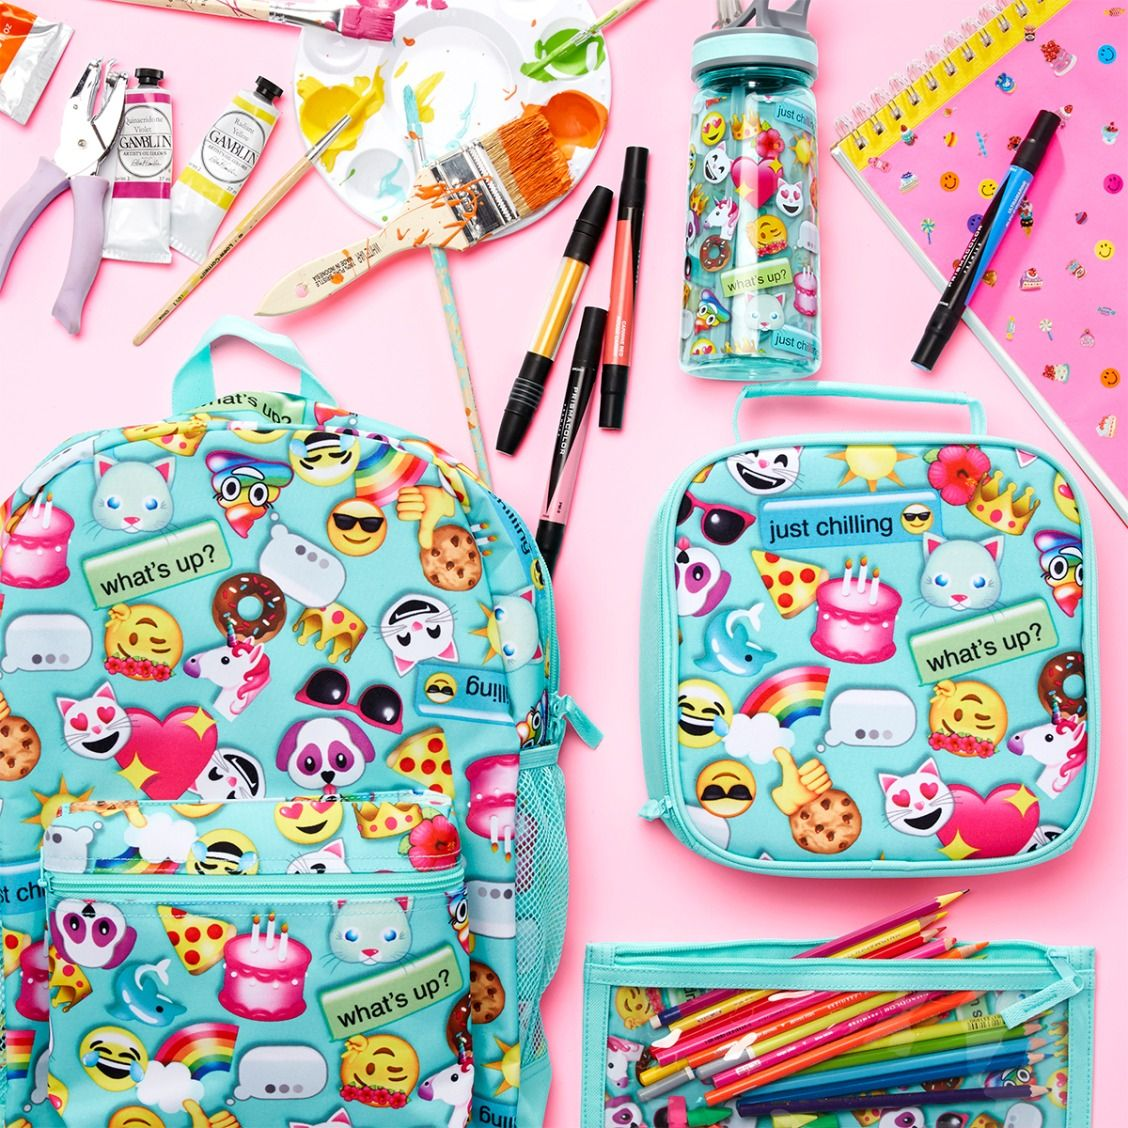 Girls  fashion   Kids  clothes   Backpack   Lunchbox   Pencil holder    Water bottle   Camp style   The Children s Place 0c273c9e70